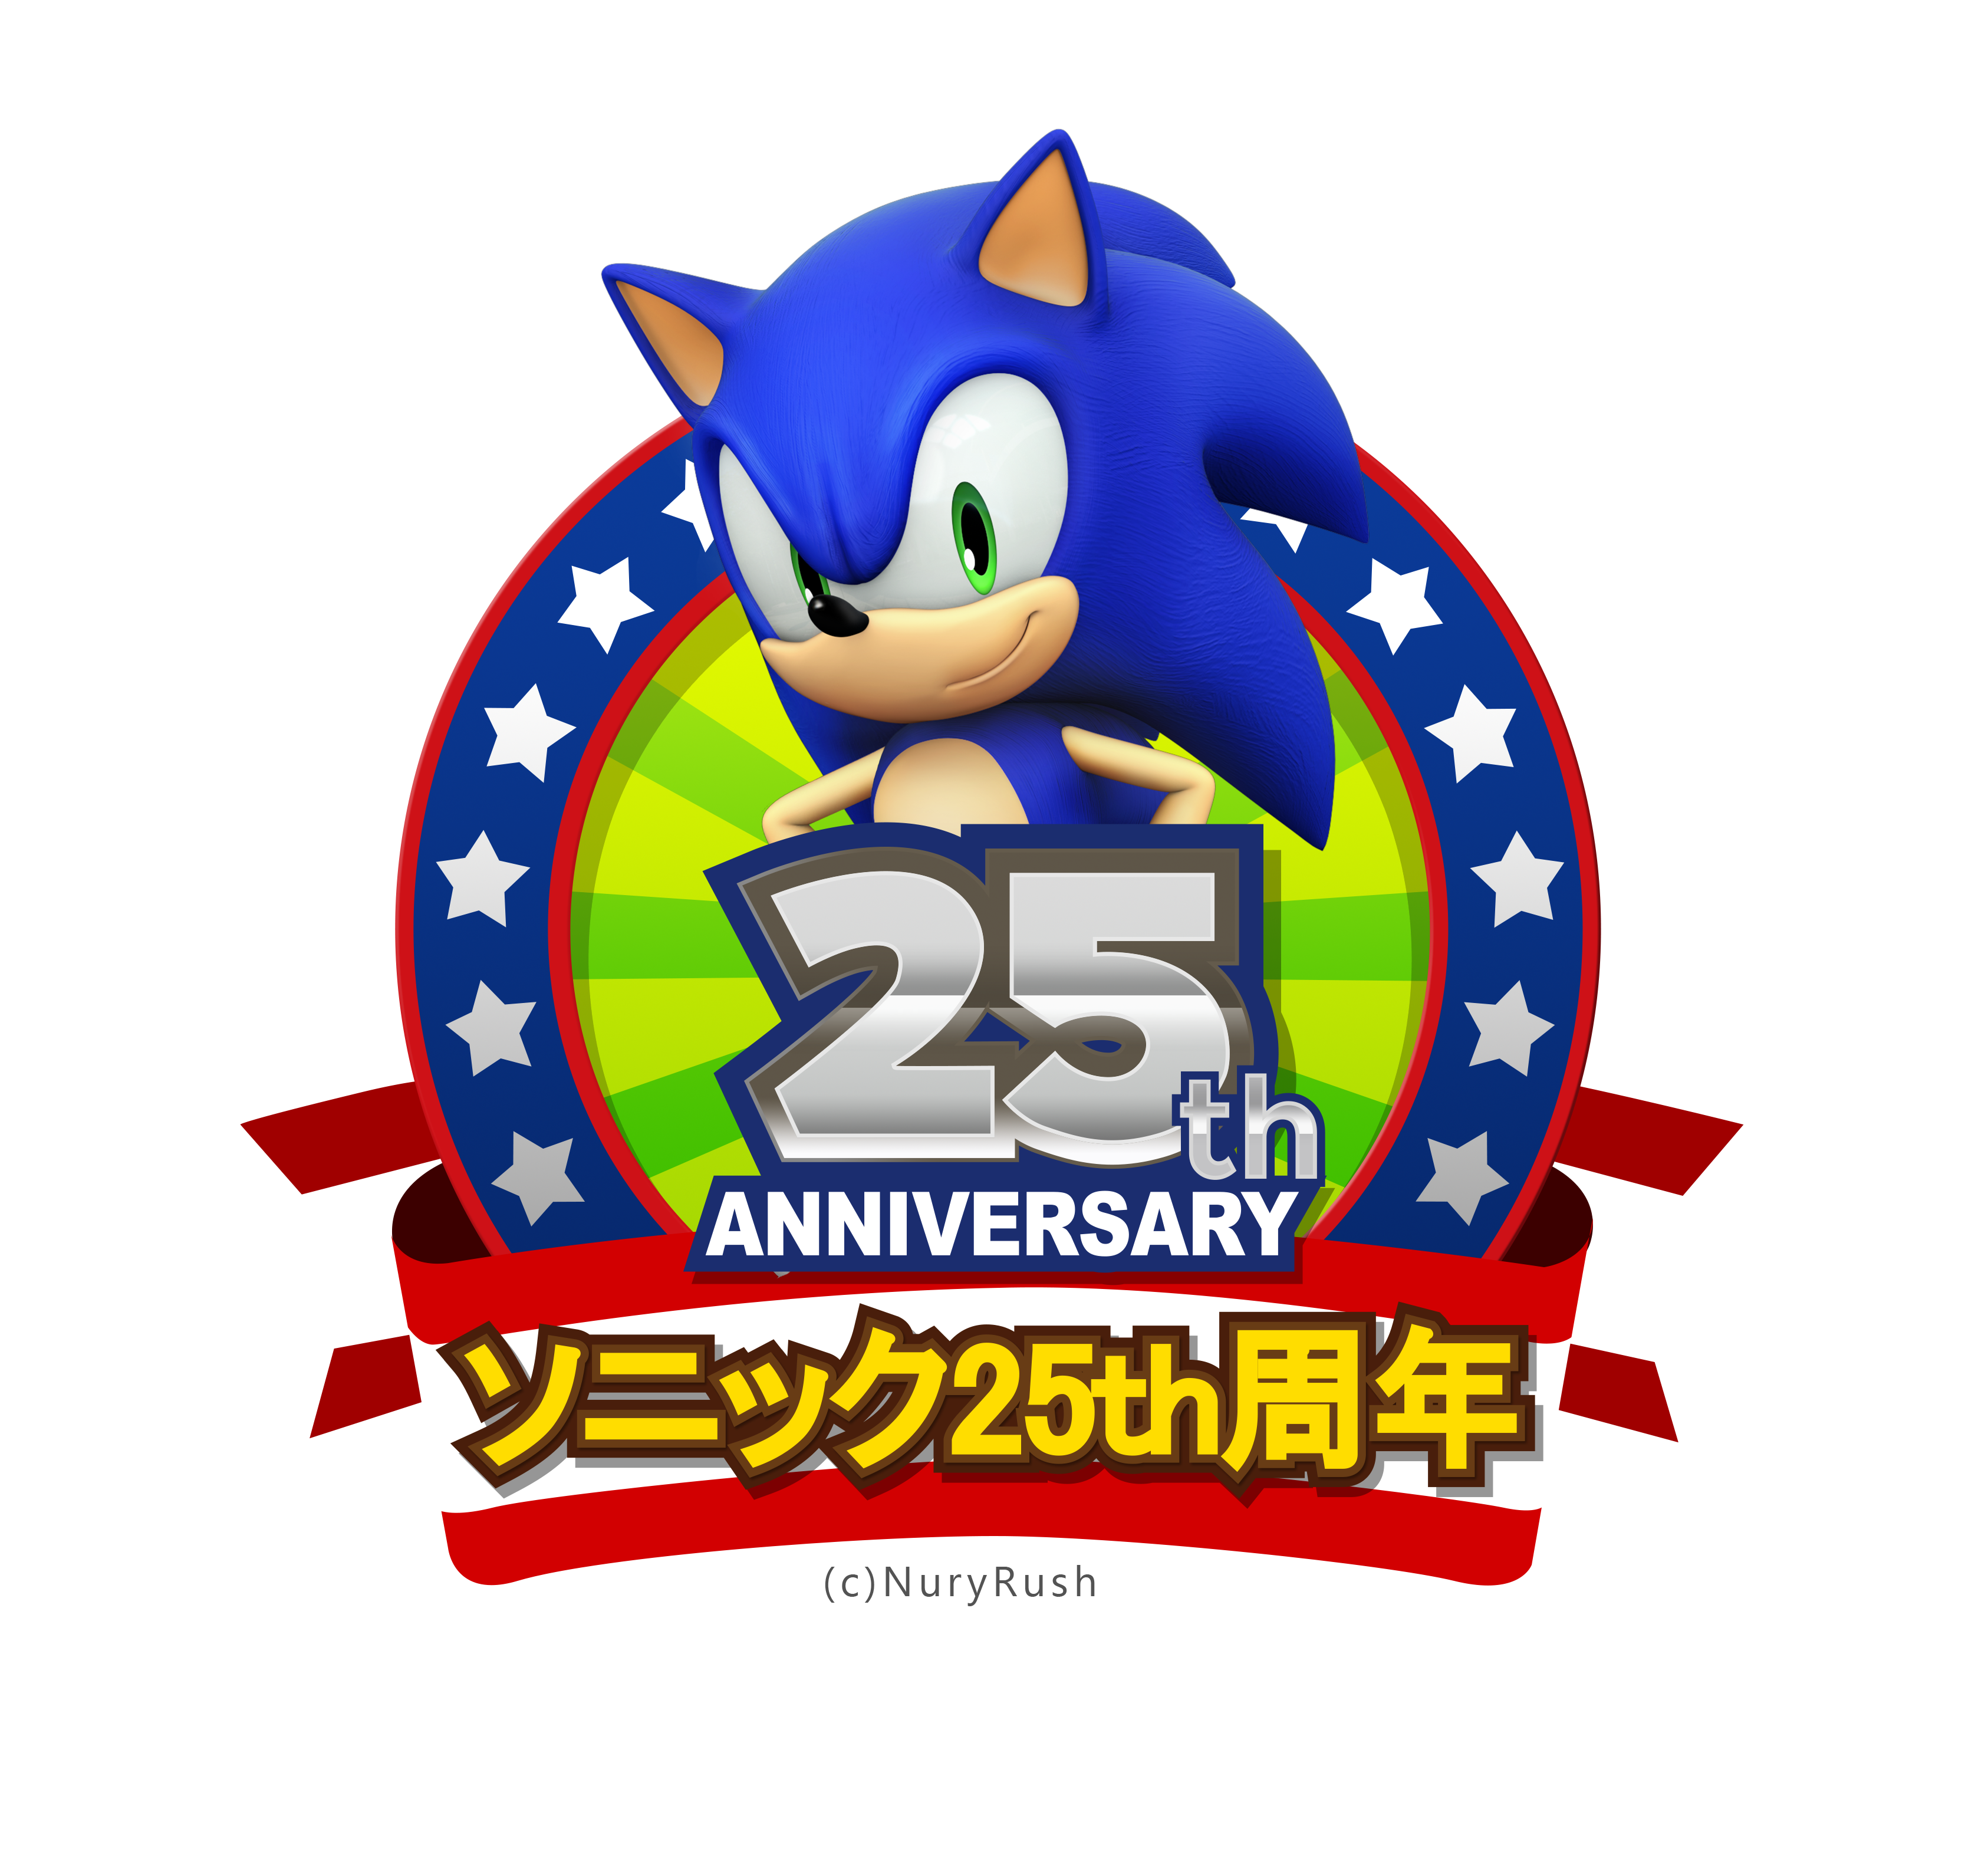 sonic s 25th anniversary logo  event edition  by nuryrush 25 Anniversary Logo 25th Anniversary Seal